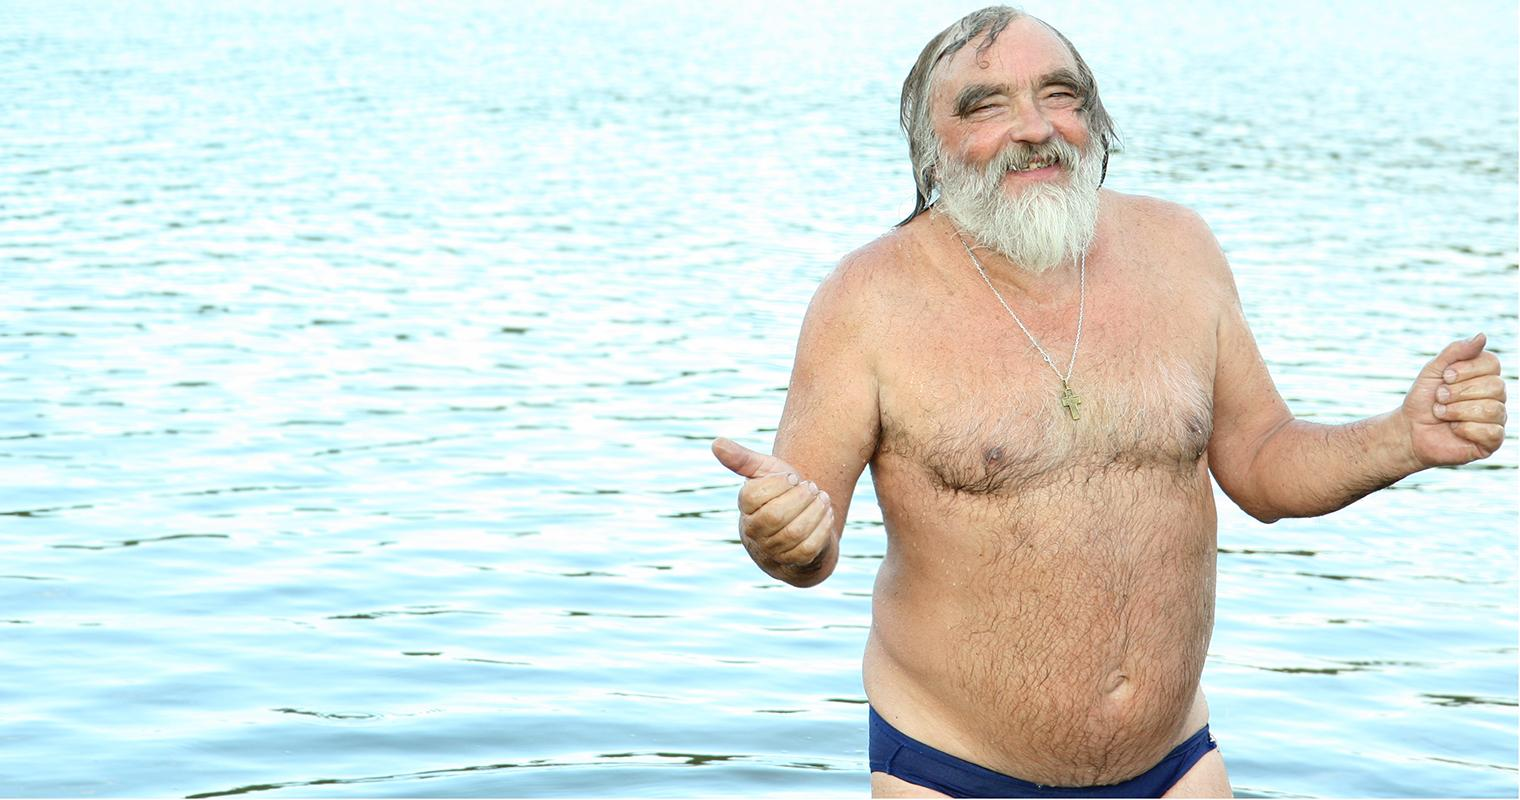 bf70844922 After the burkini ban, people are asking if France can outlaw fat men in Speedos  too